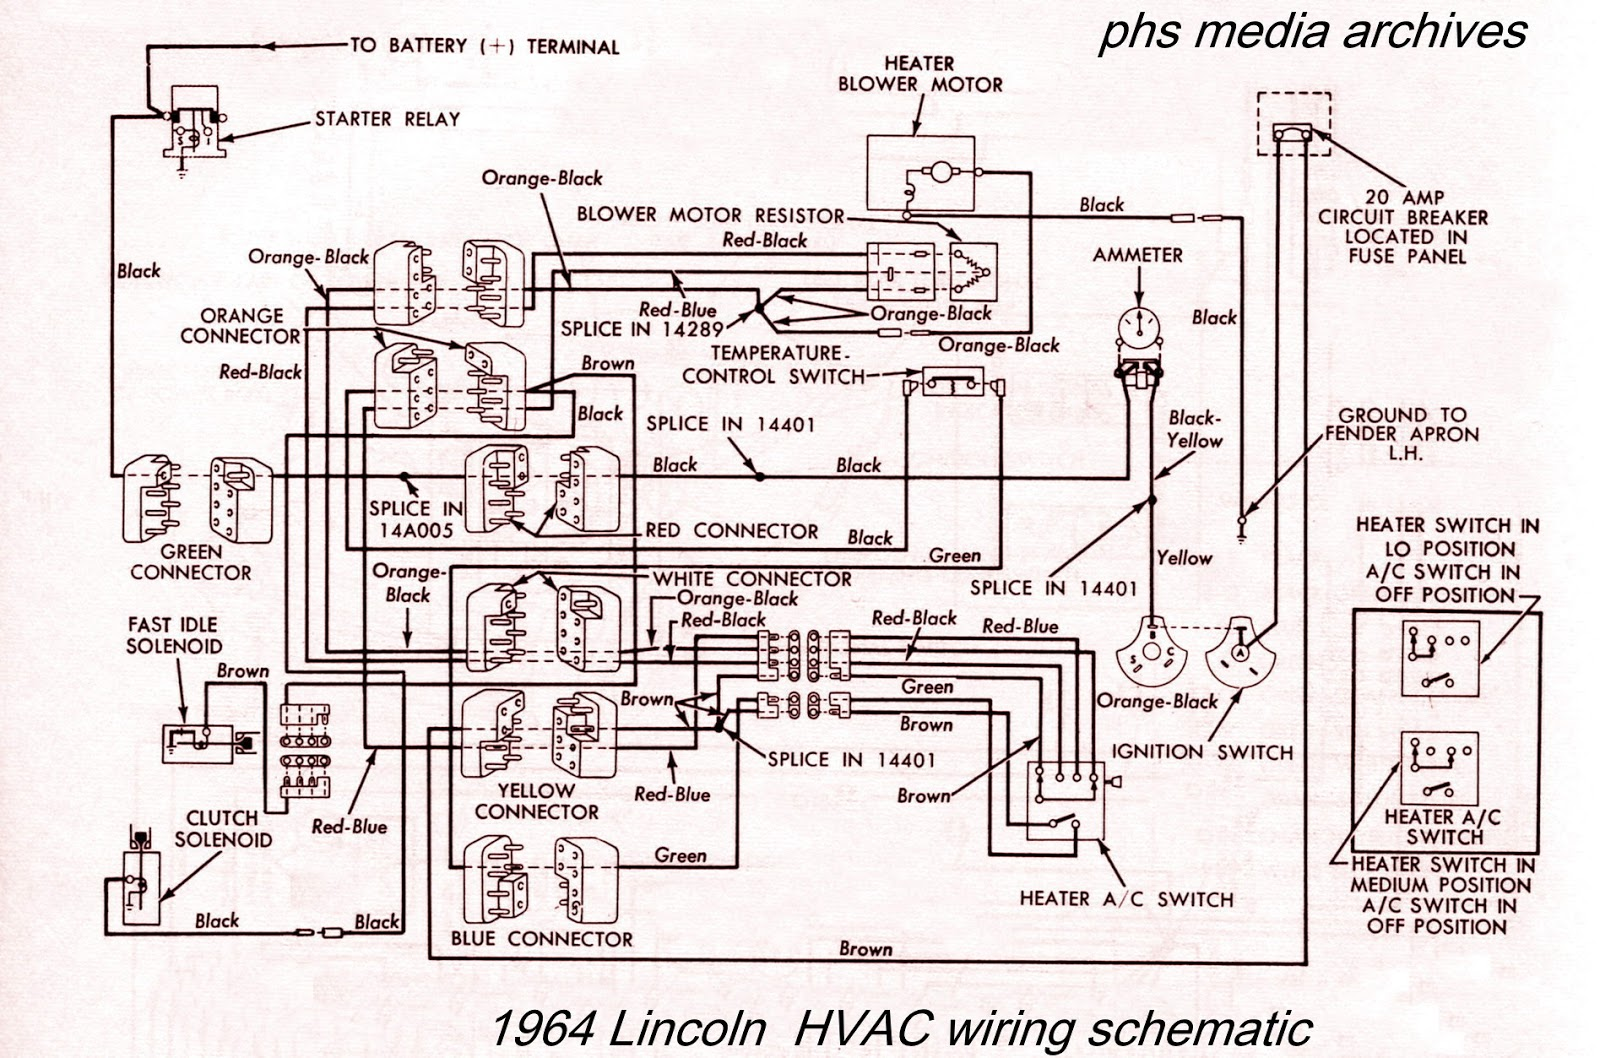 1964 lincoln fuse box - wiring diagram mind-a1 - mind-a1.progettosilver.it  progetto silver